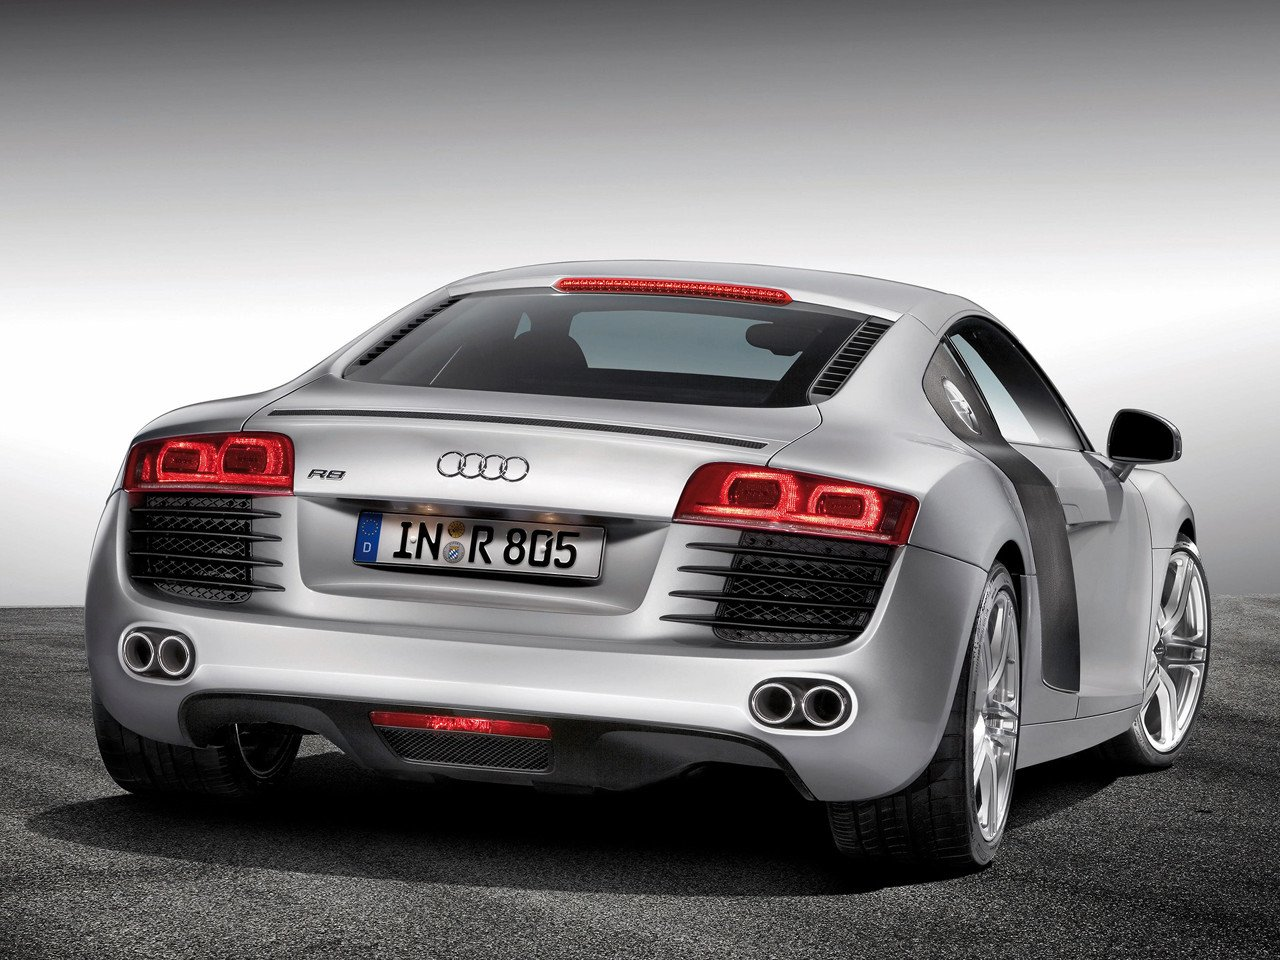 Latest Audi Cars Wallpapers Pictures Of Cars Hd Free Download